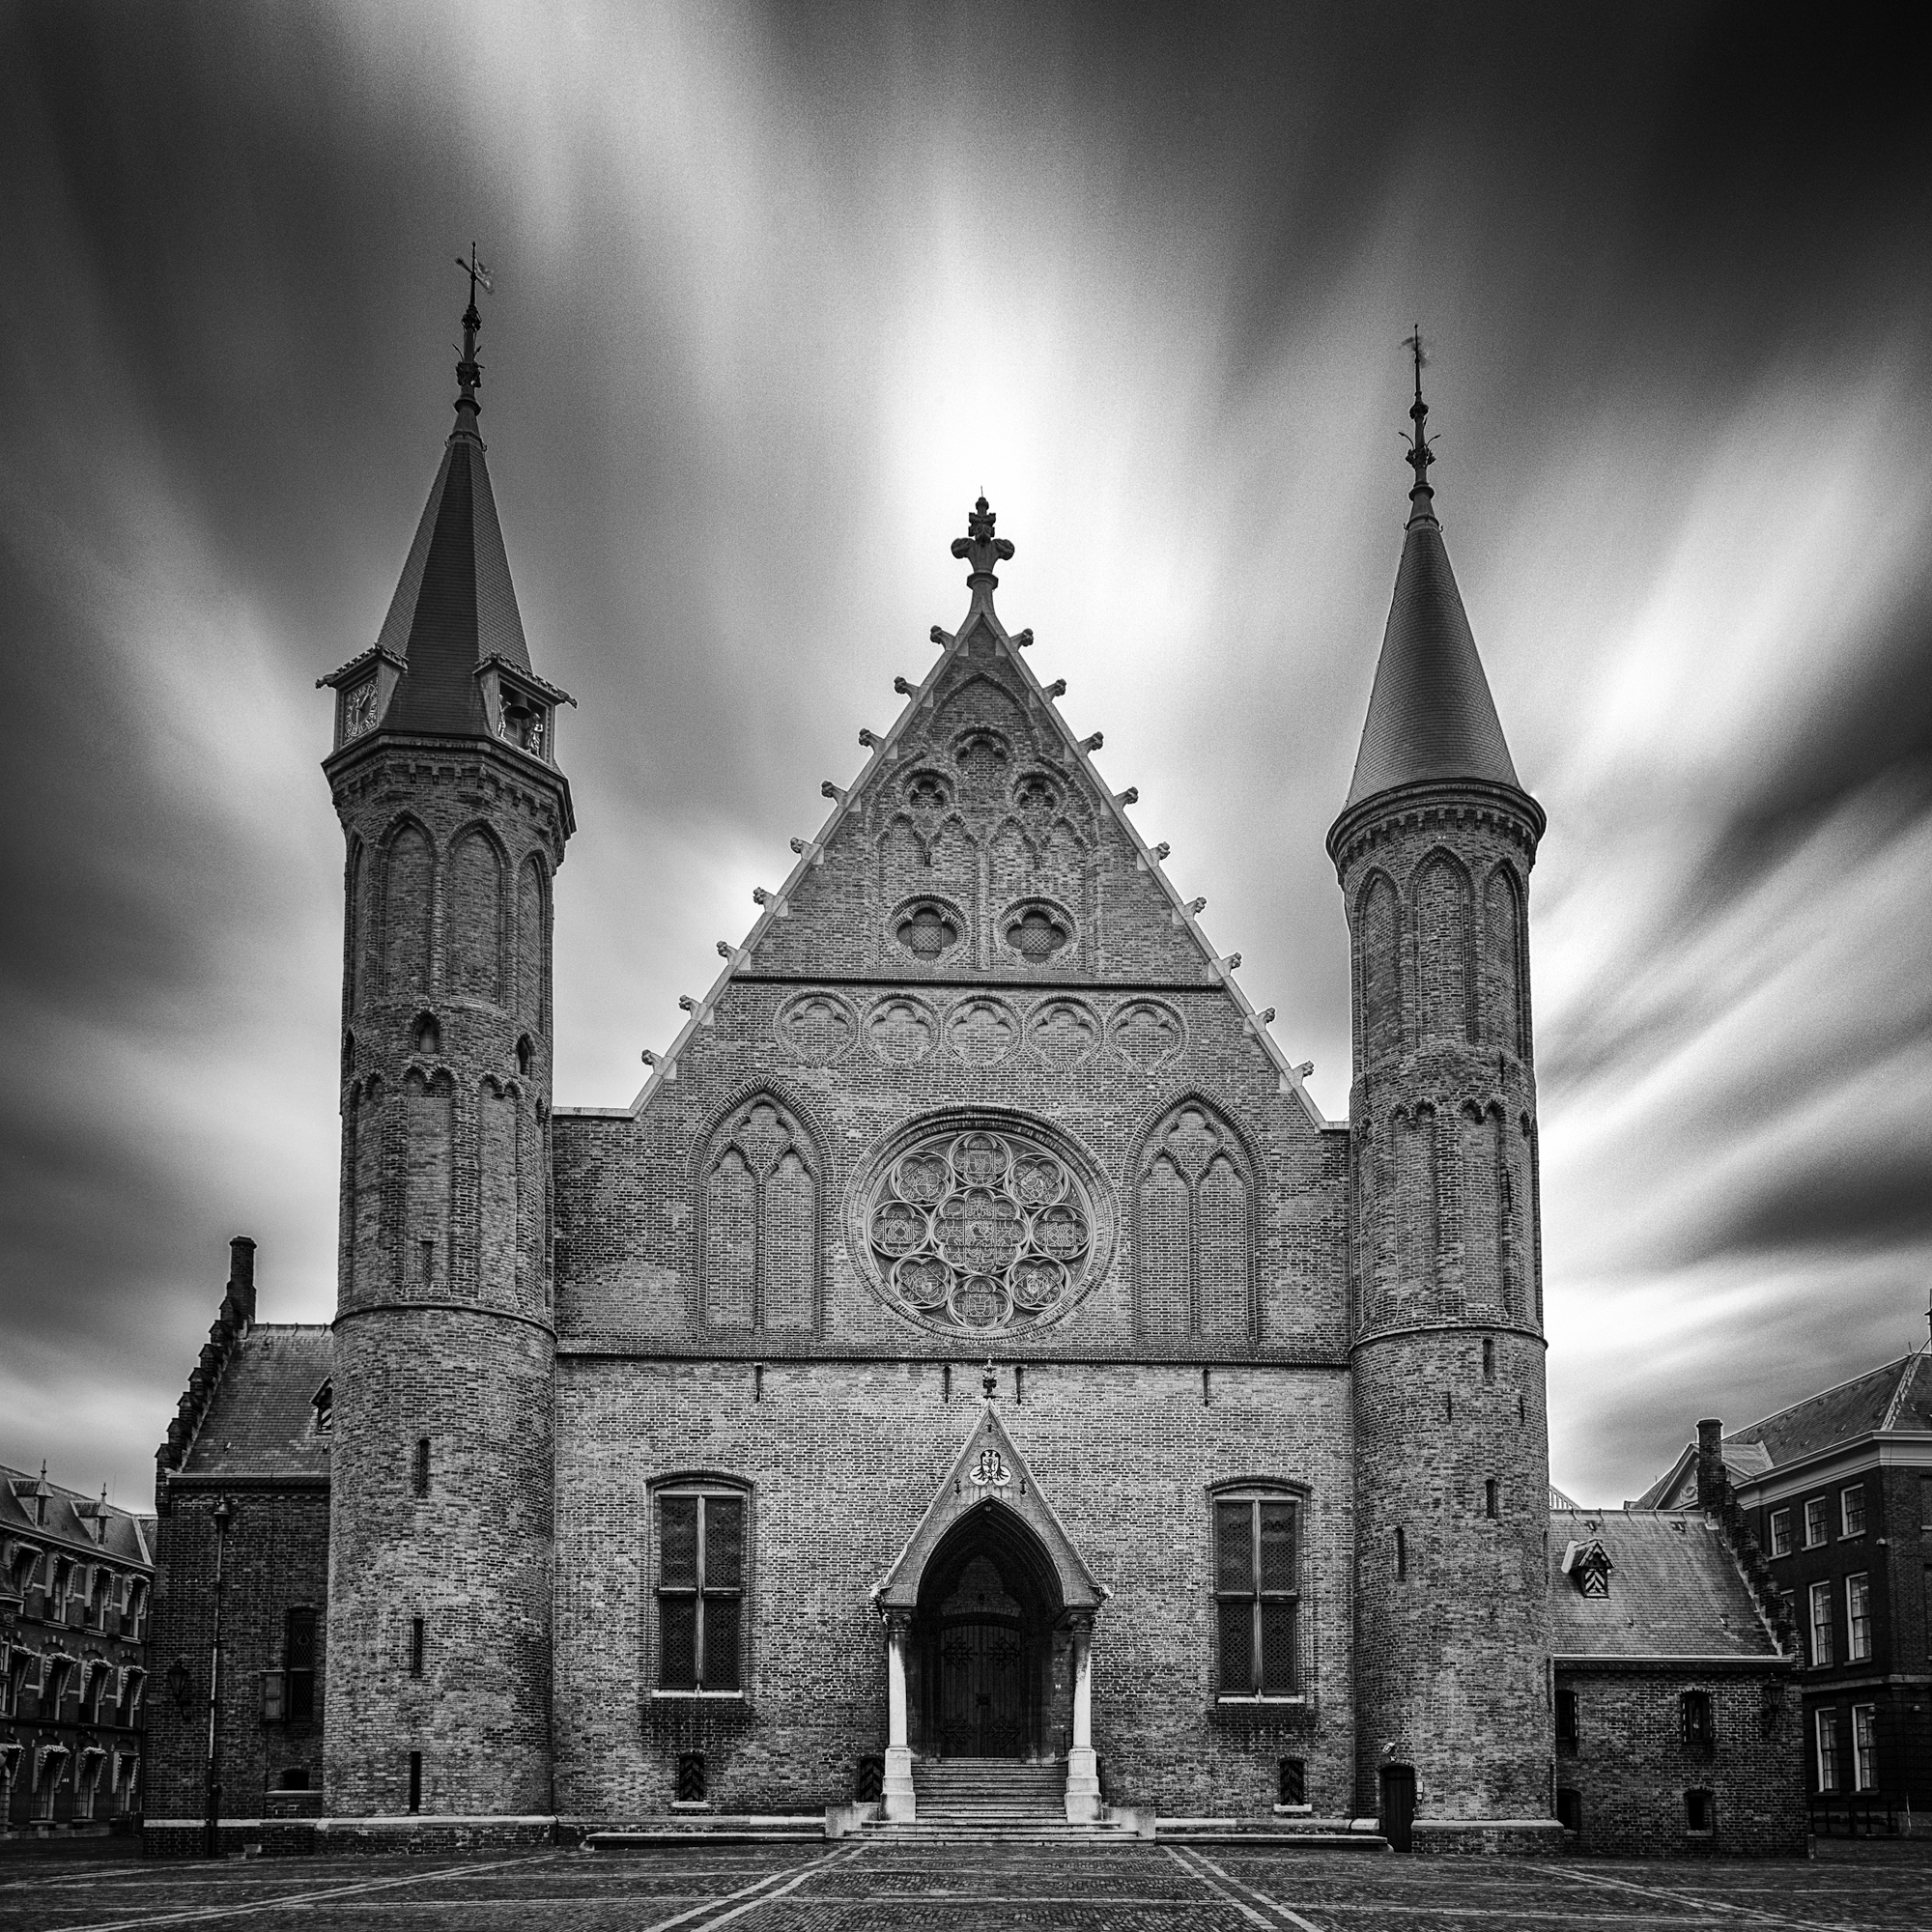 Ridderzaal - The Hague